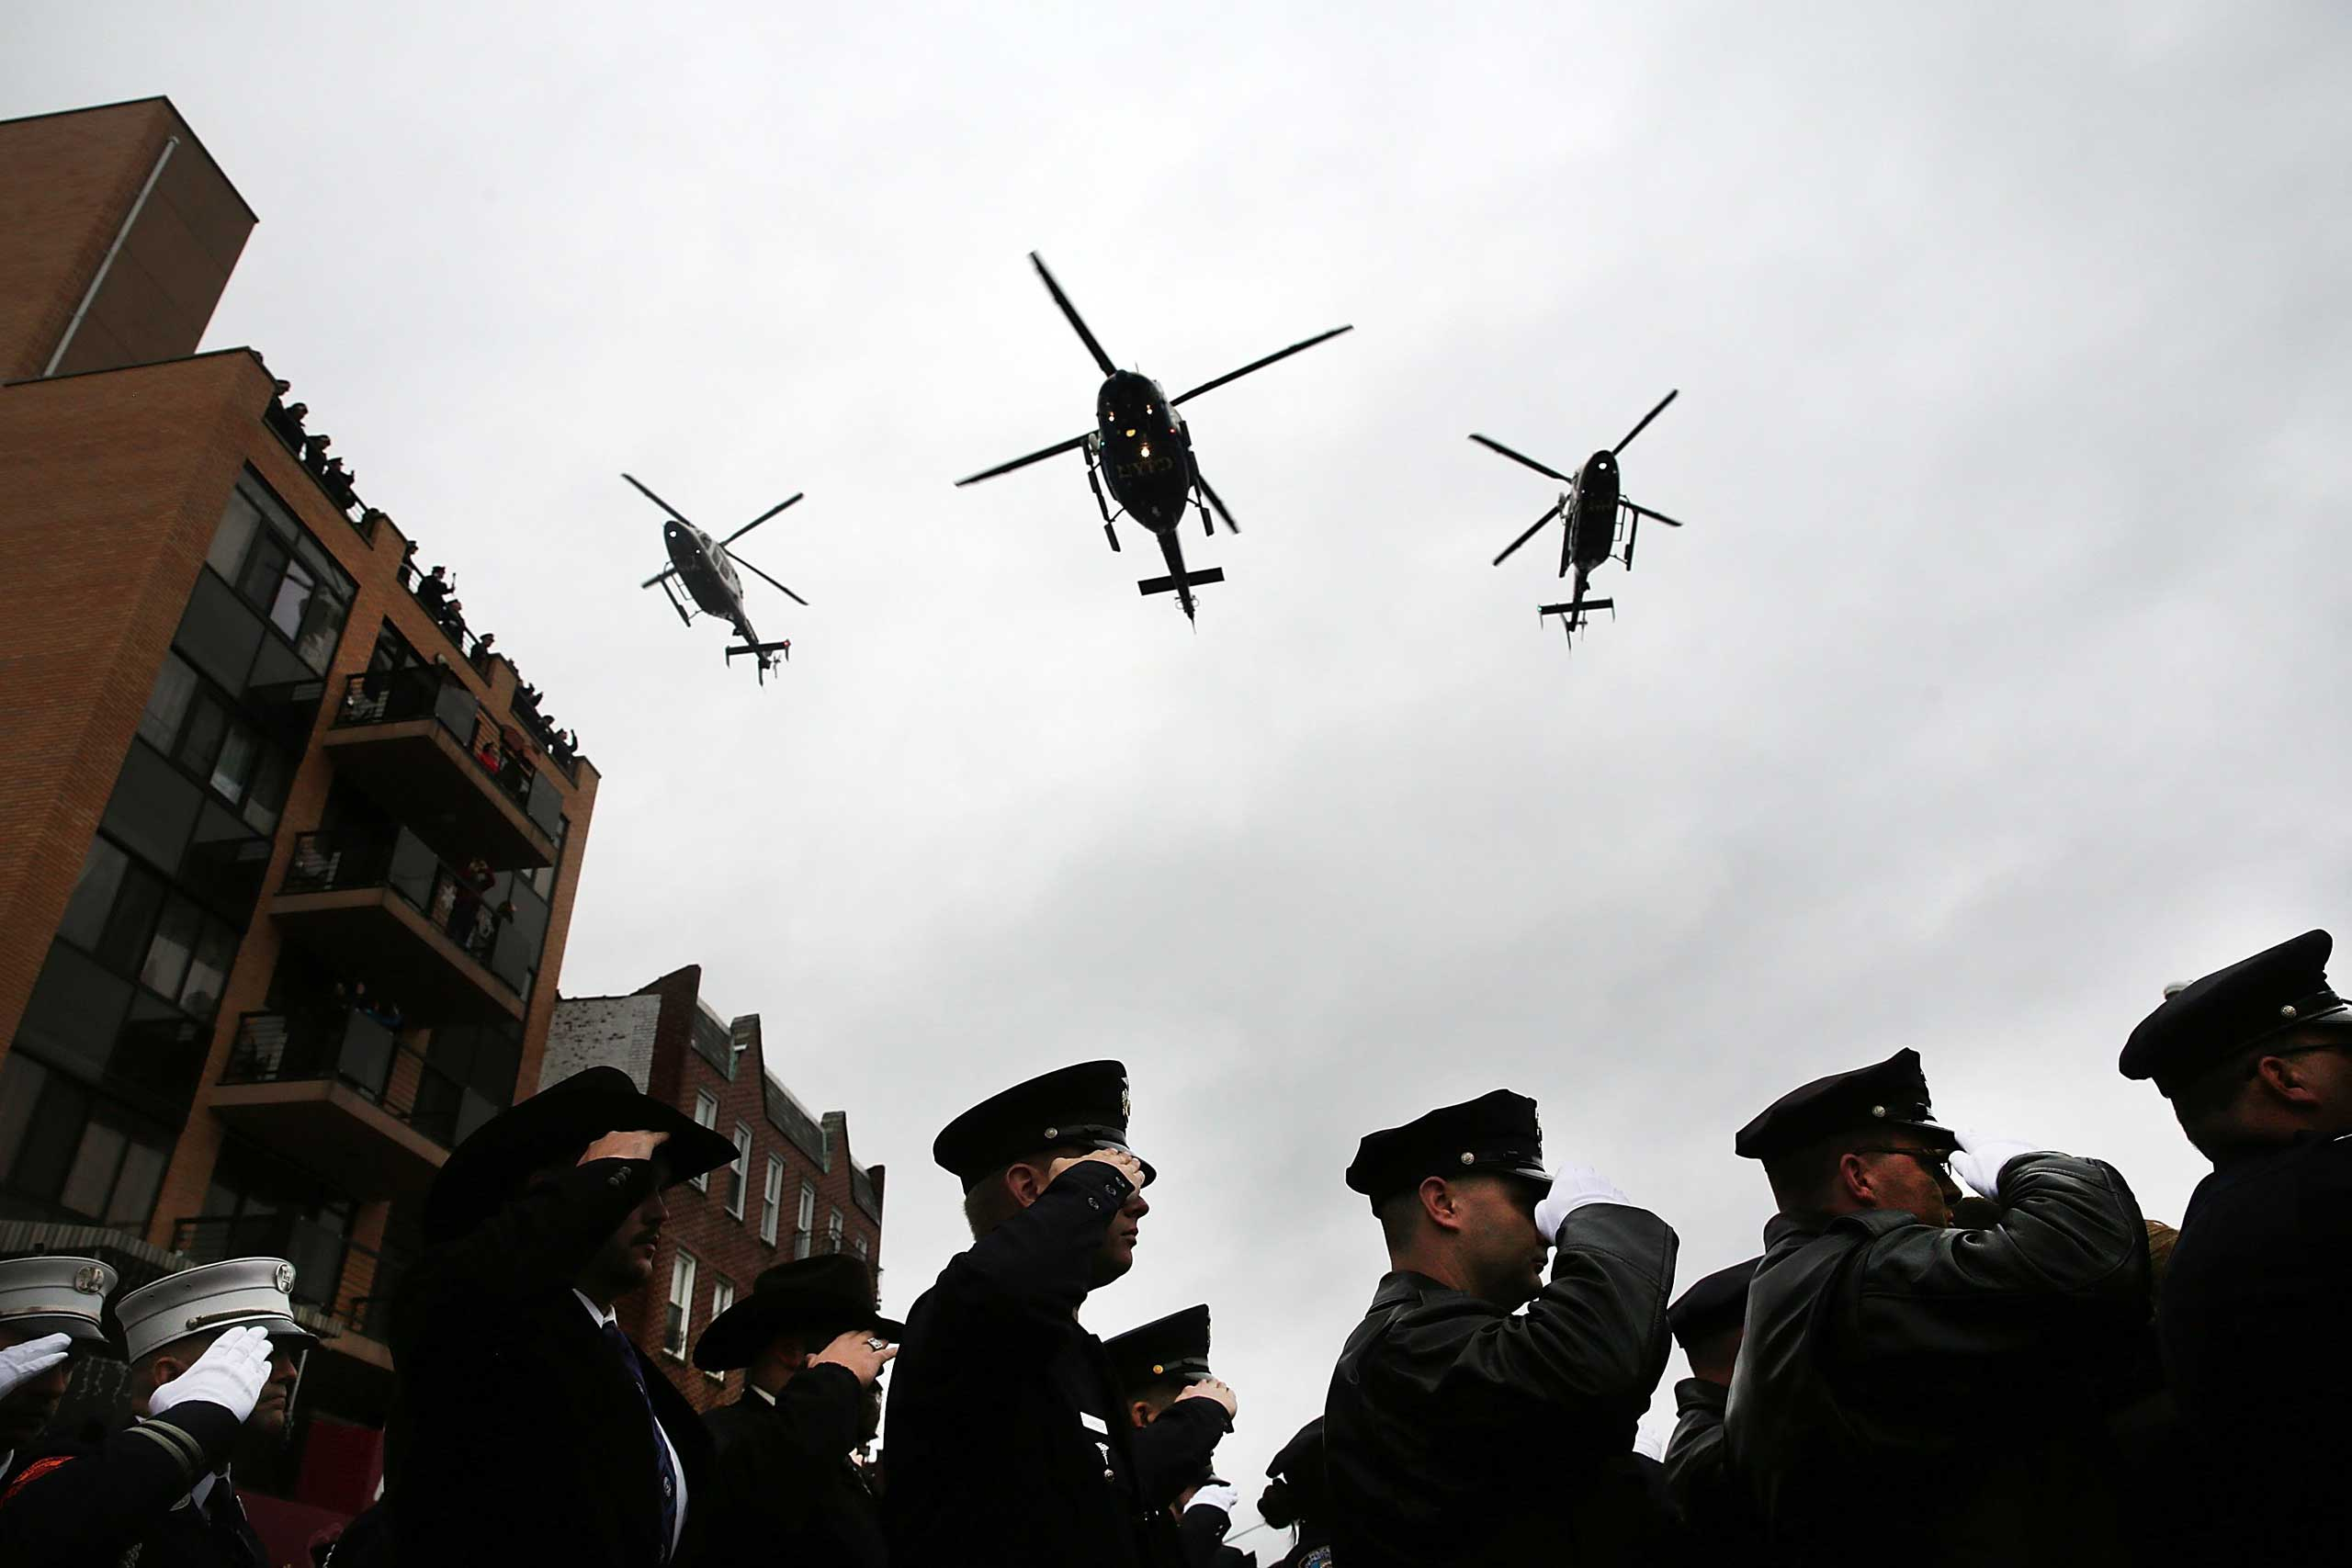 Police helicopters do a fly over at the conclusion of the funeral service for slain New York City Police Officer Wenjian Liu on Jan. 4, 2015 in New York.